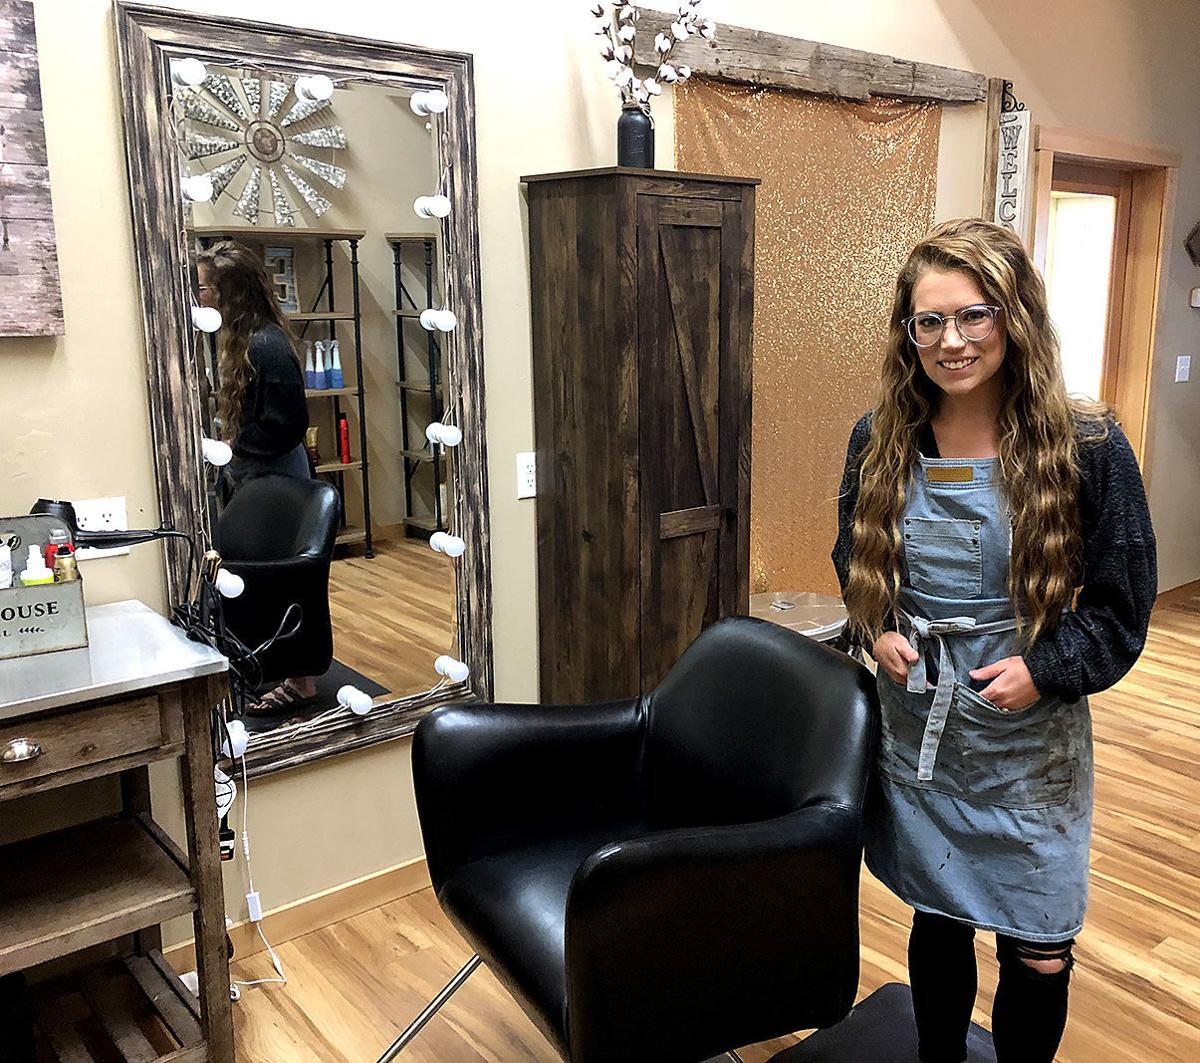 Local hair salons open up to wave of customers